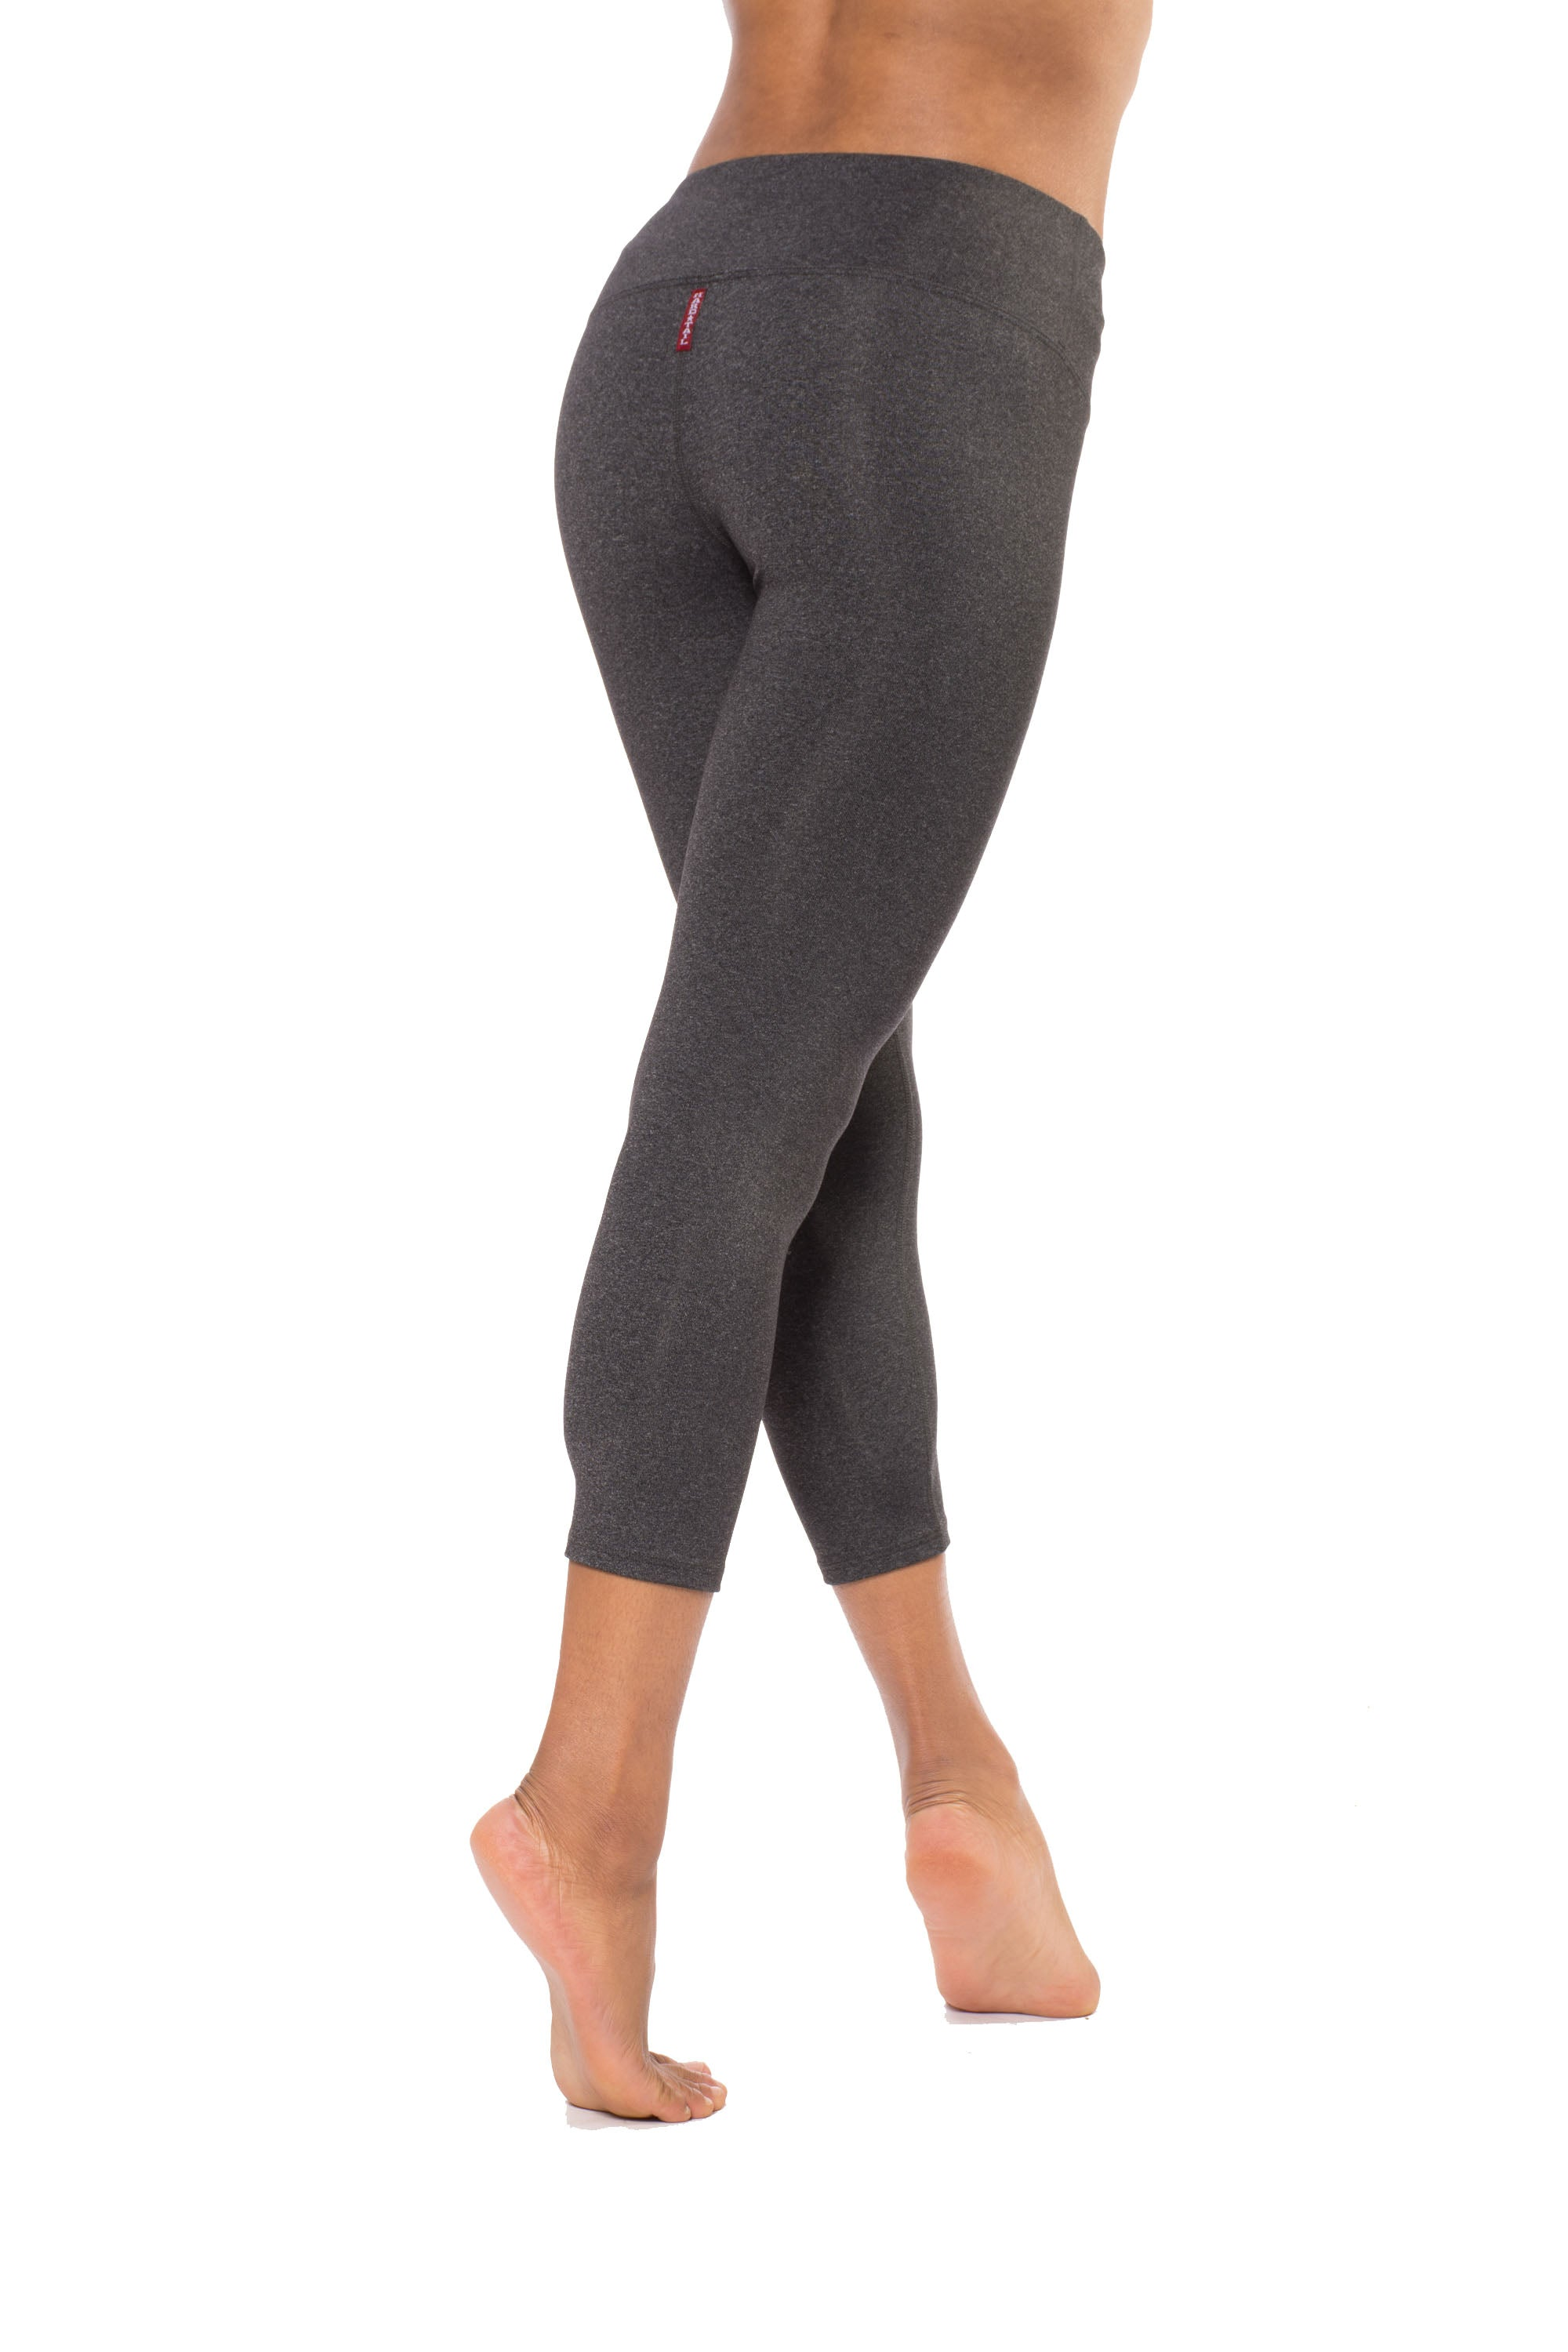 Supplex Flat Waist Capri (Style SUPCH-04, Charcoal) by Hard Tail Forever